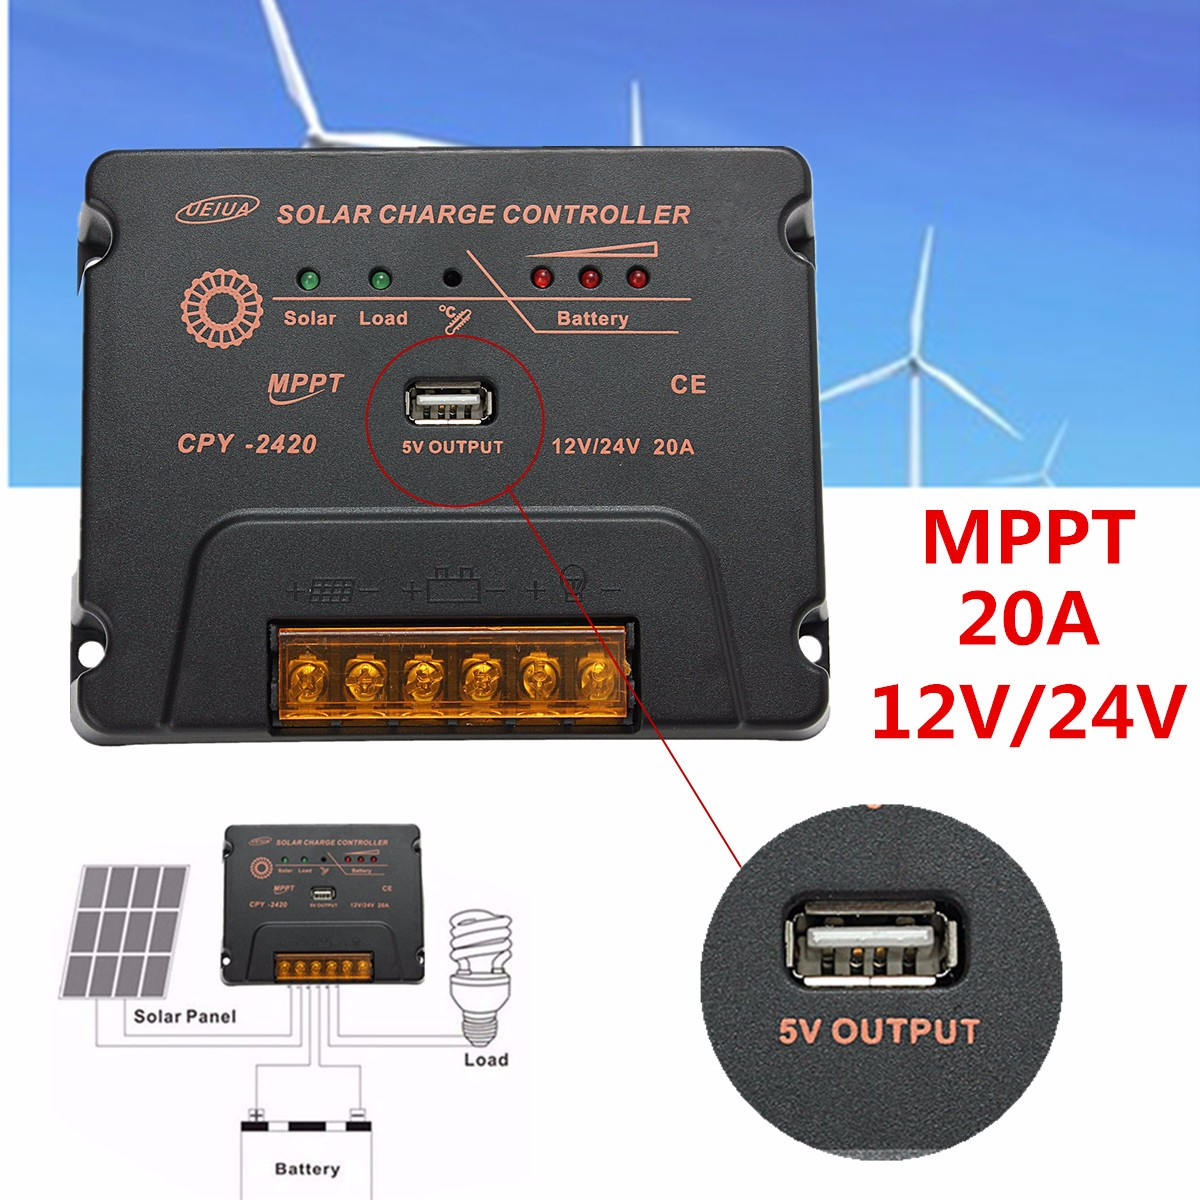 CPY-2420 12V/24V 20A USB MPPT Solar Panel Battery Charge Controller